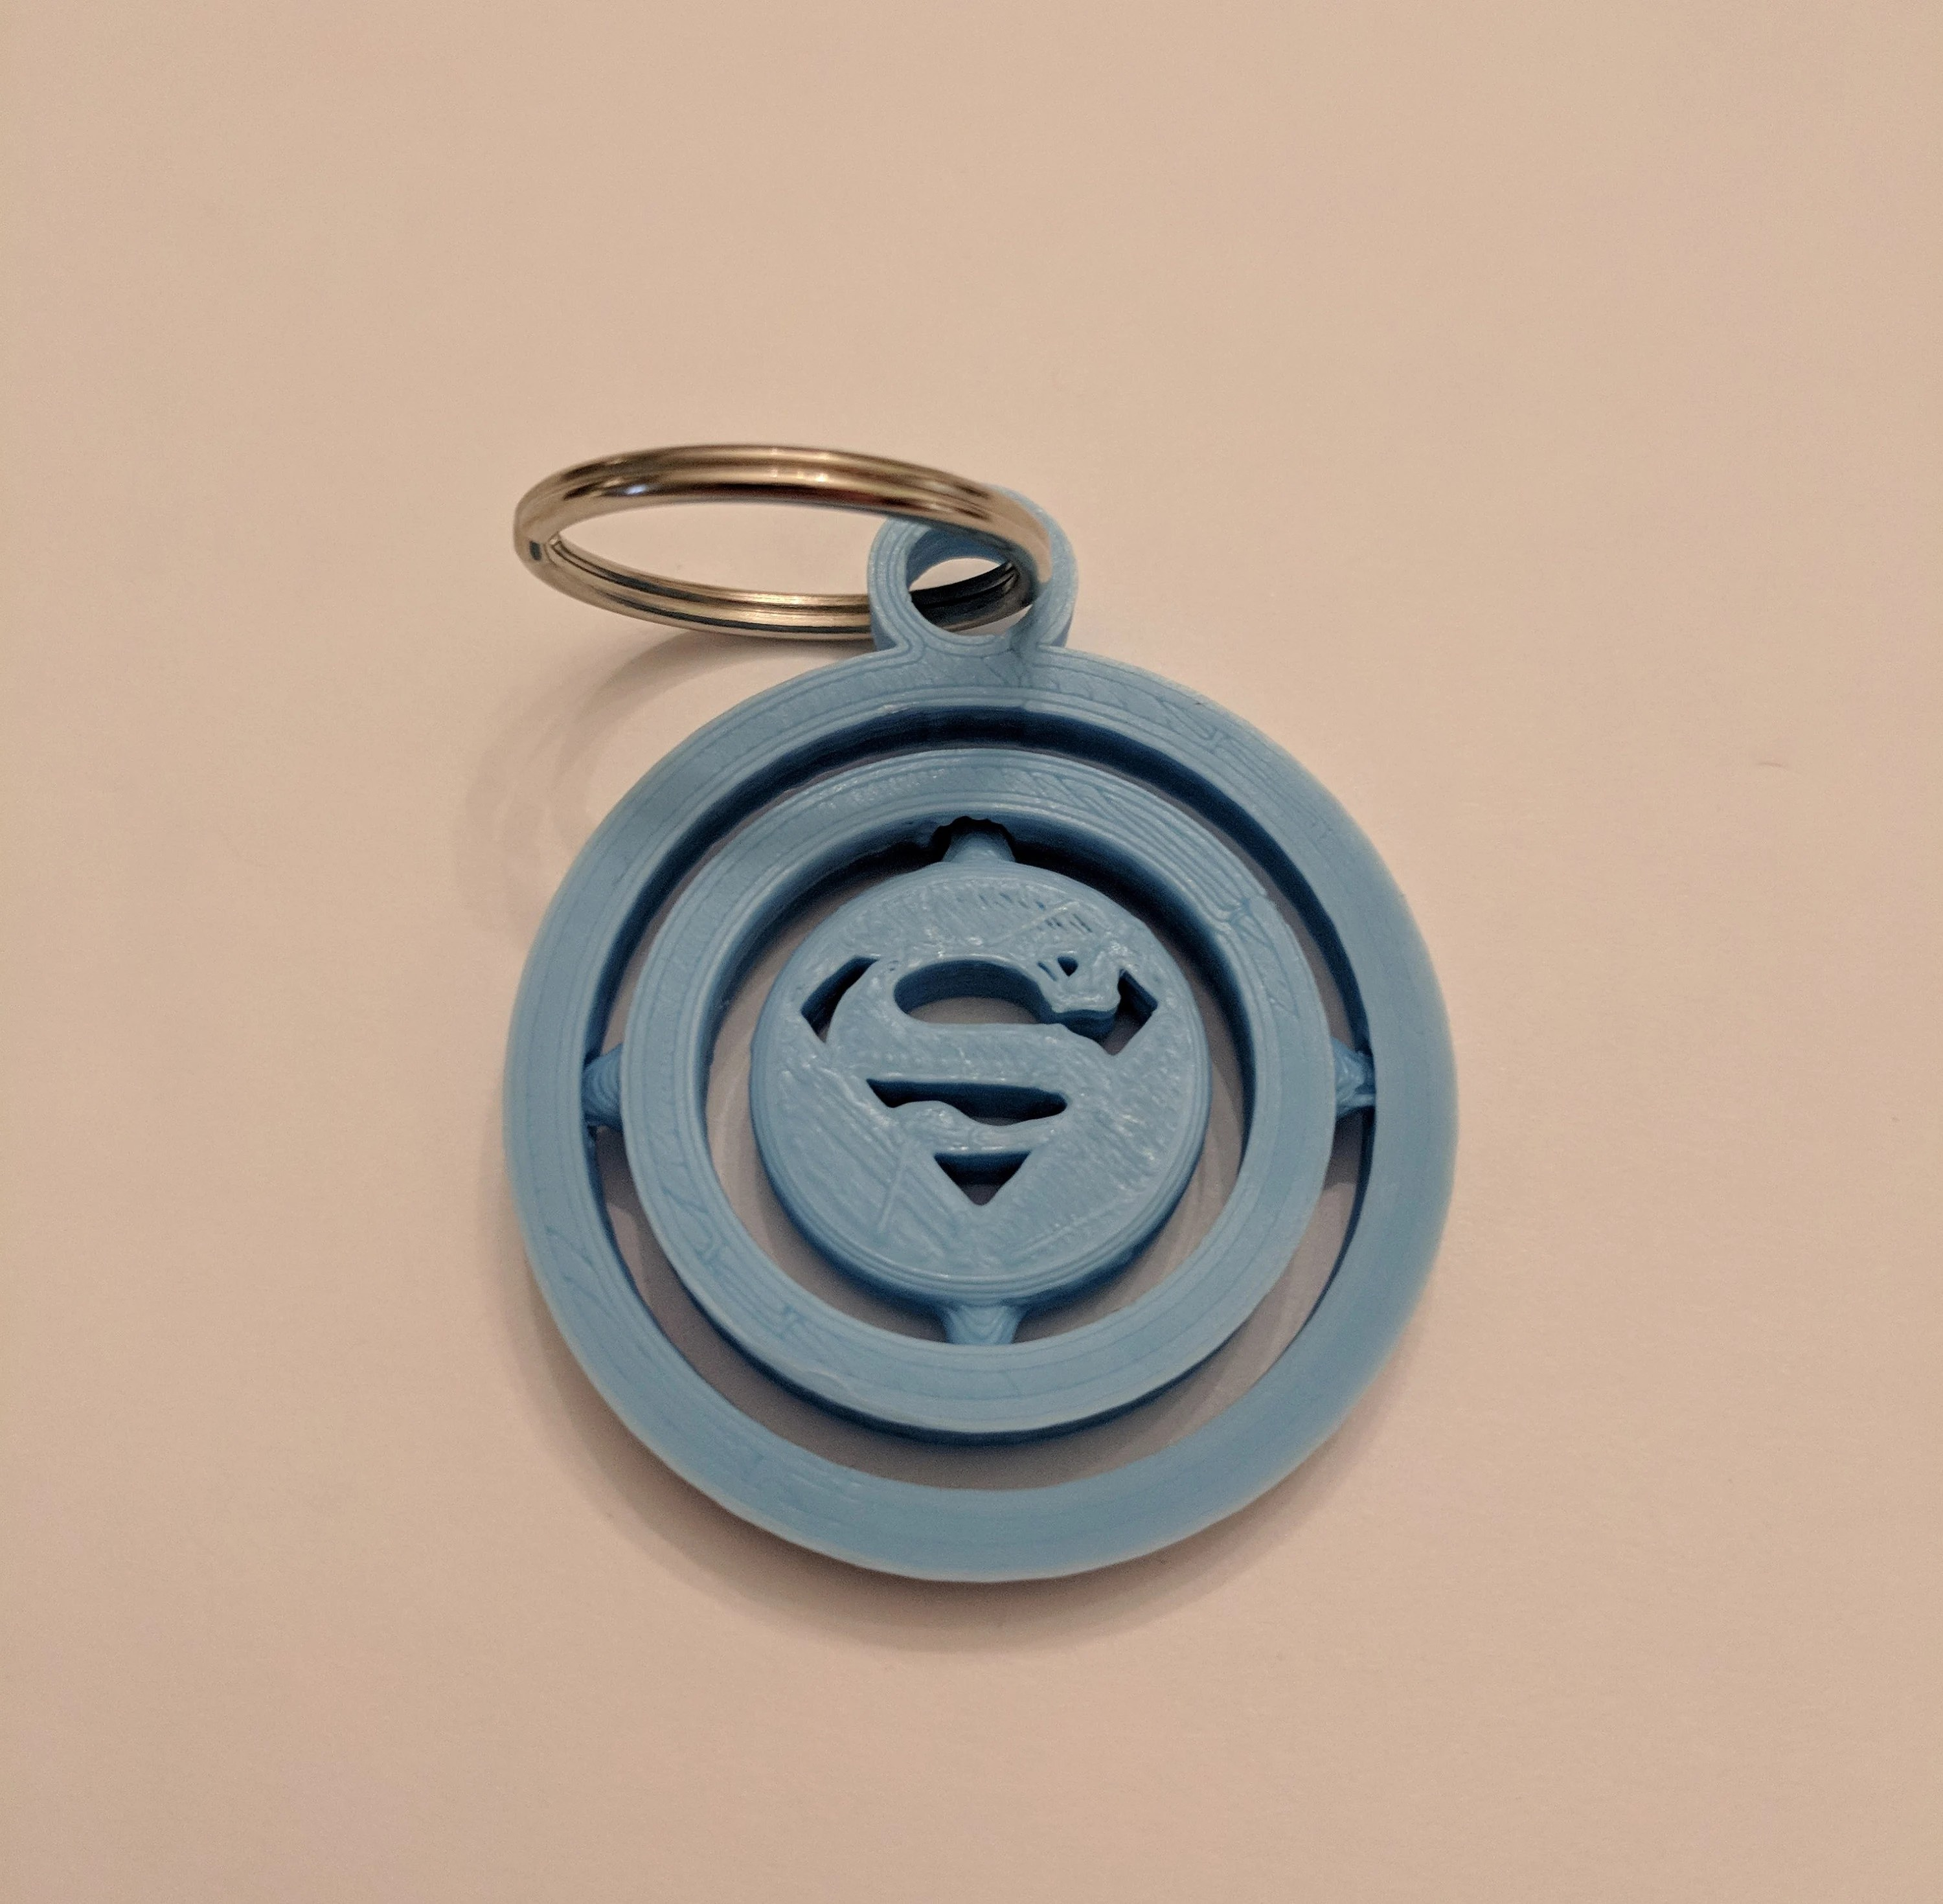 3d printed superman inspired